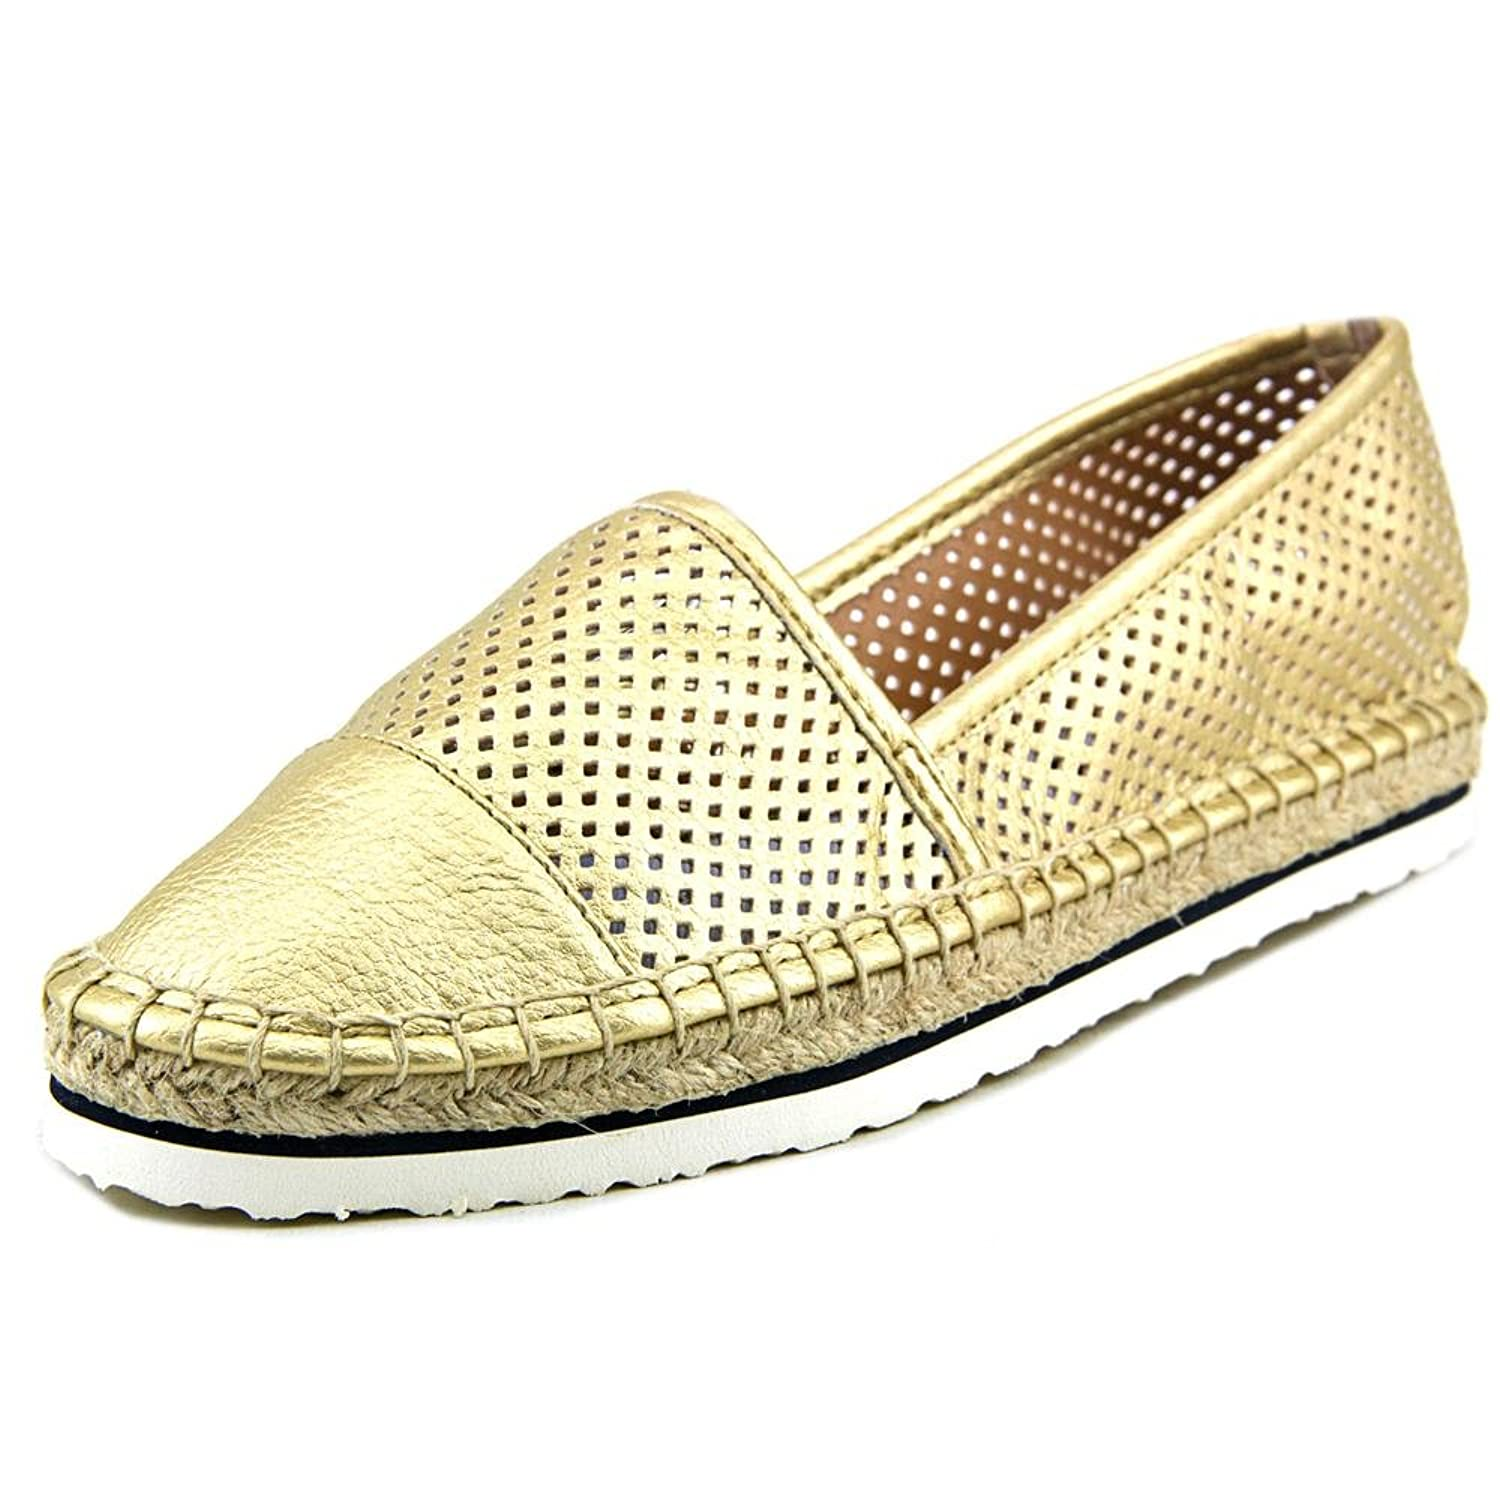 Tommy Hilfiger Women's Edore Perforated Espadrilles, Gold, Size 9.5